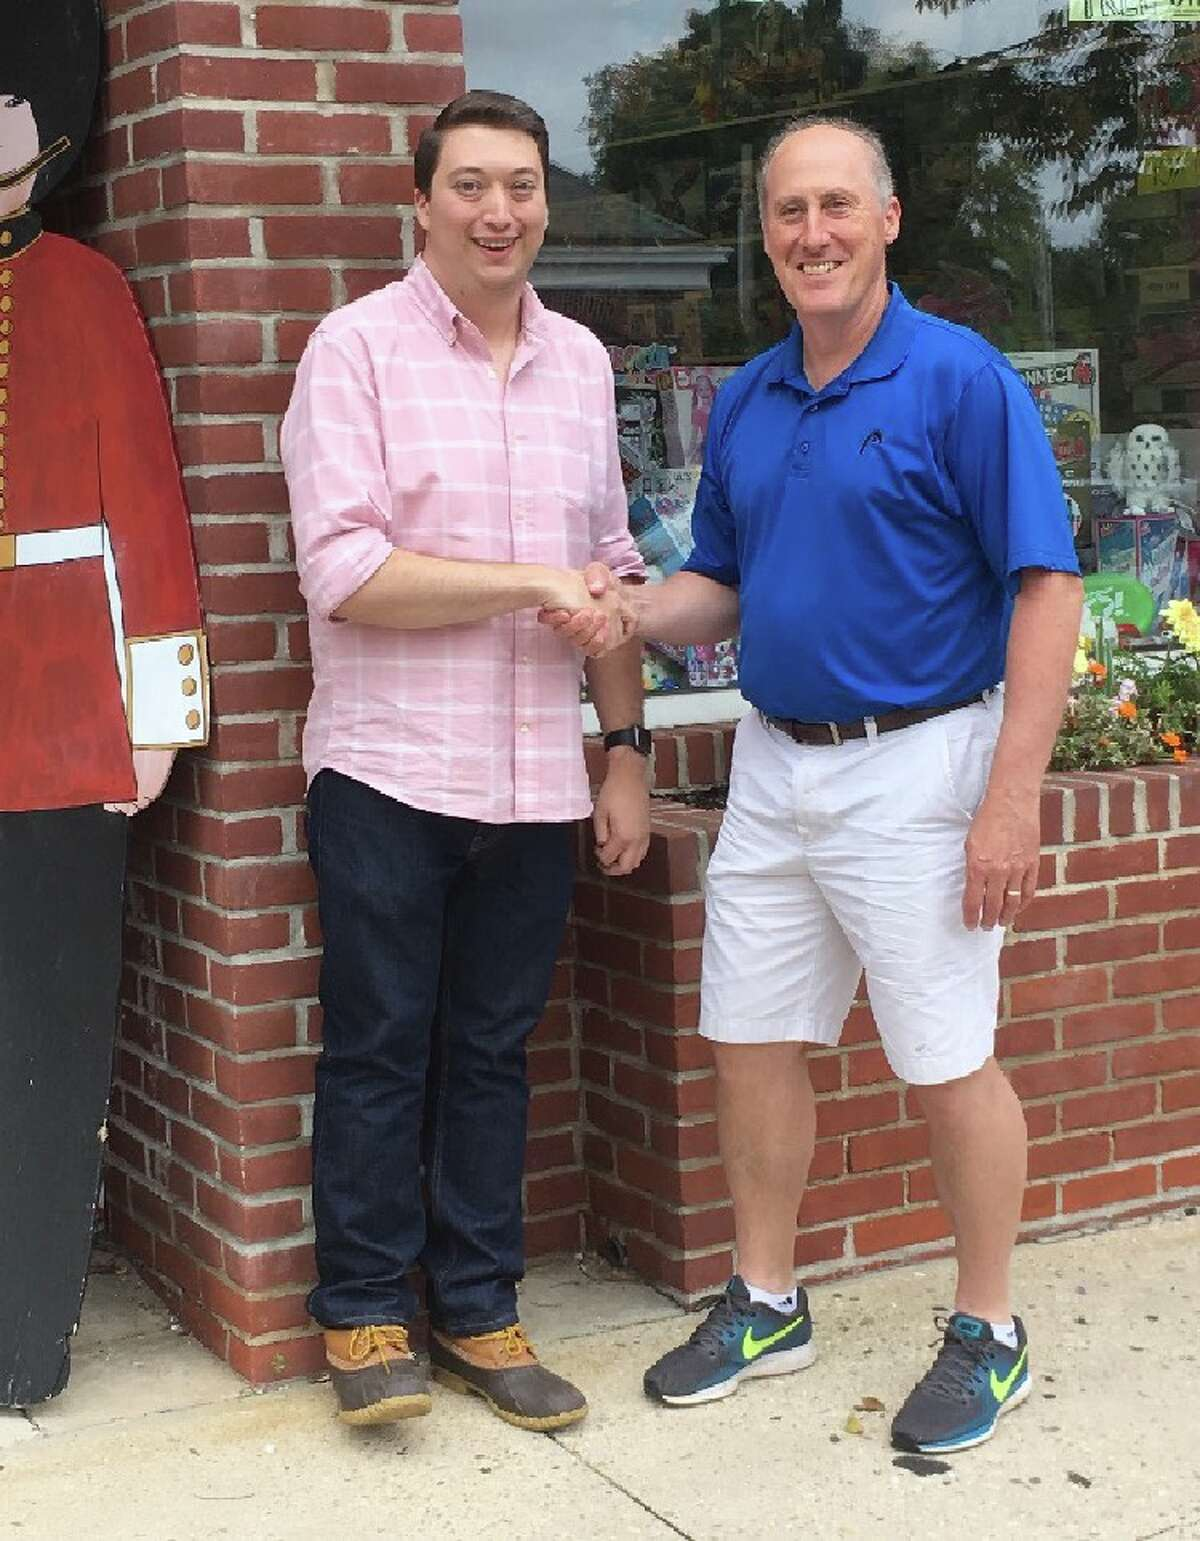 New owner of New Canaan Toy Store Nathan Shapiro, left, shakes hands with former owner Chris Kilbane outside the Park Street store a few days after the store changed hands. - Greg Reilly photo